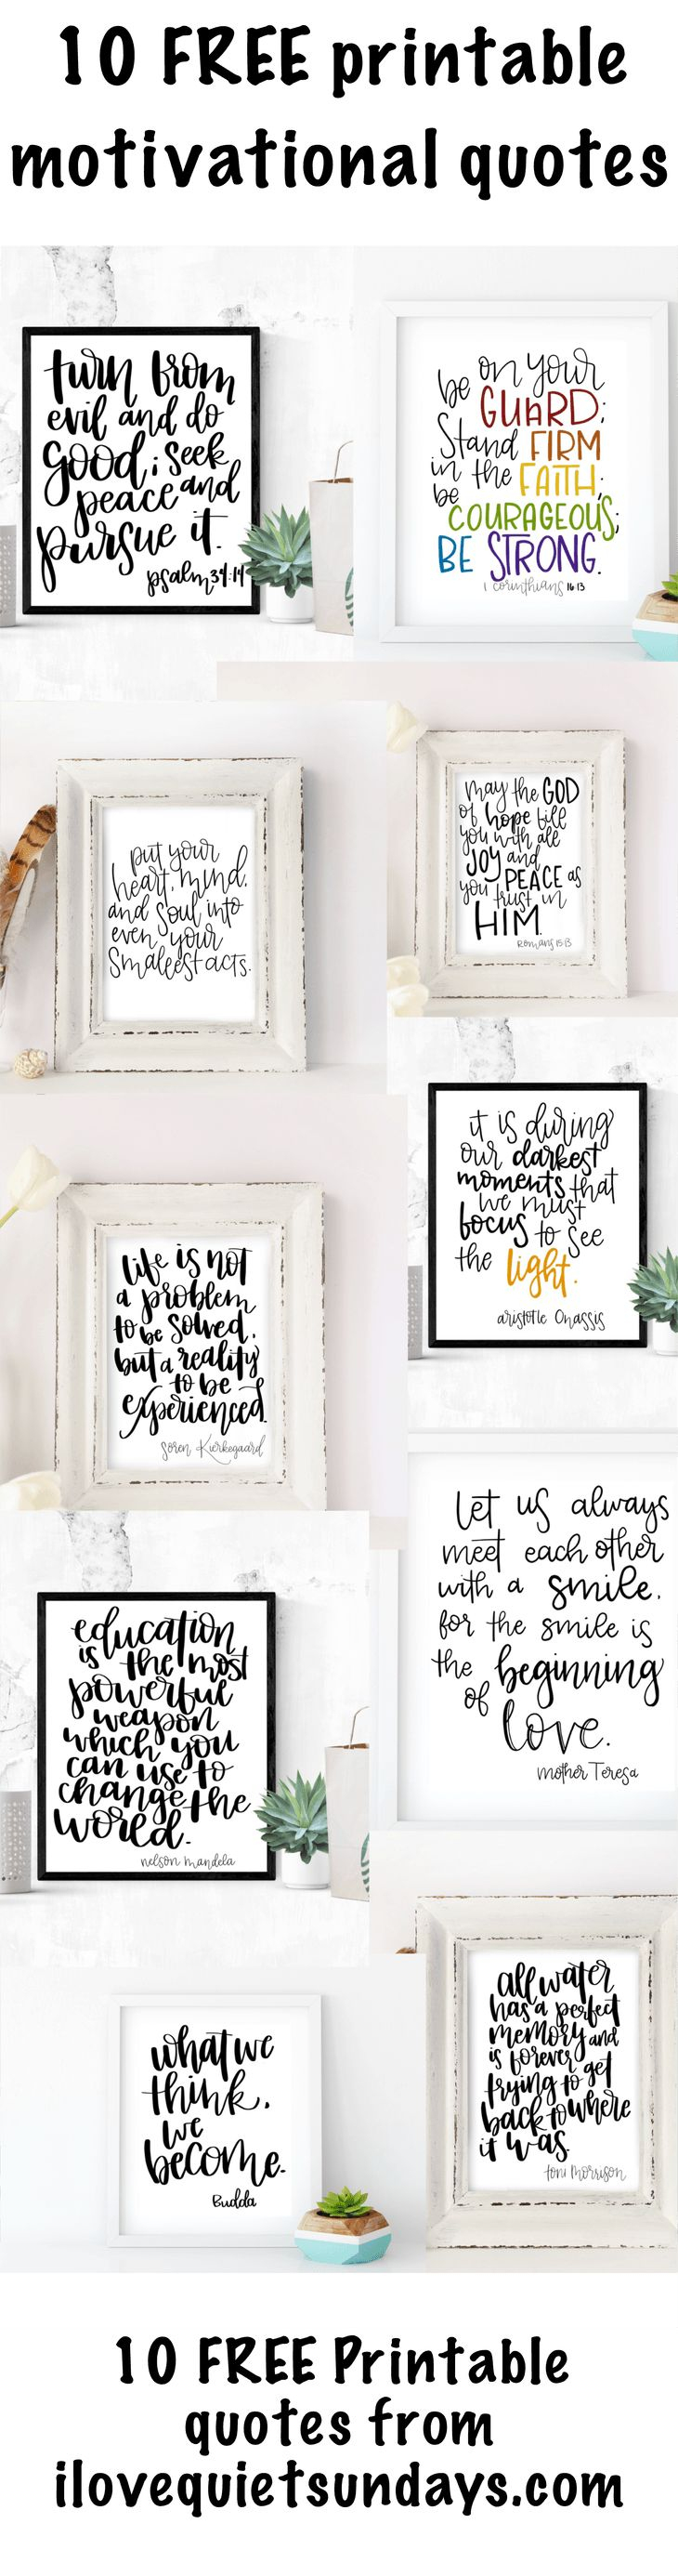 118 Best Word Art Images On Pinterest | Free Printables, Etchings - Free Printable Quotes Templates